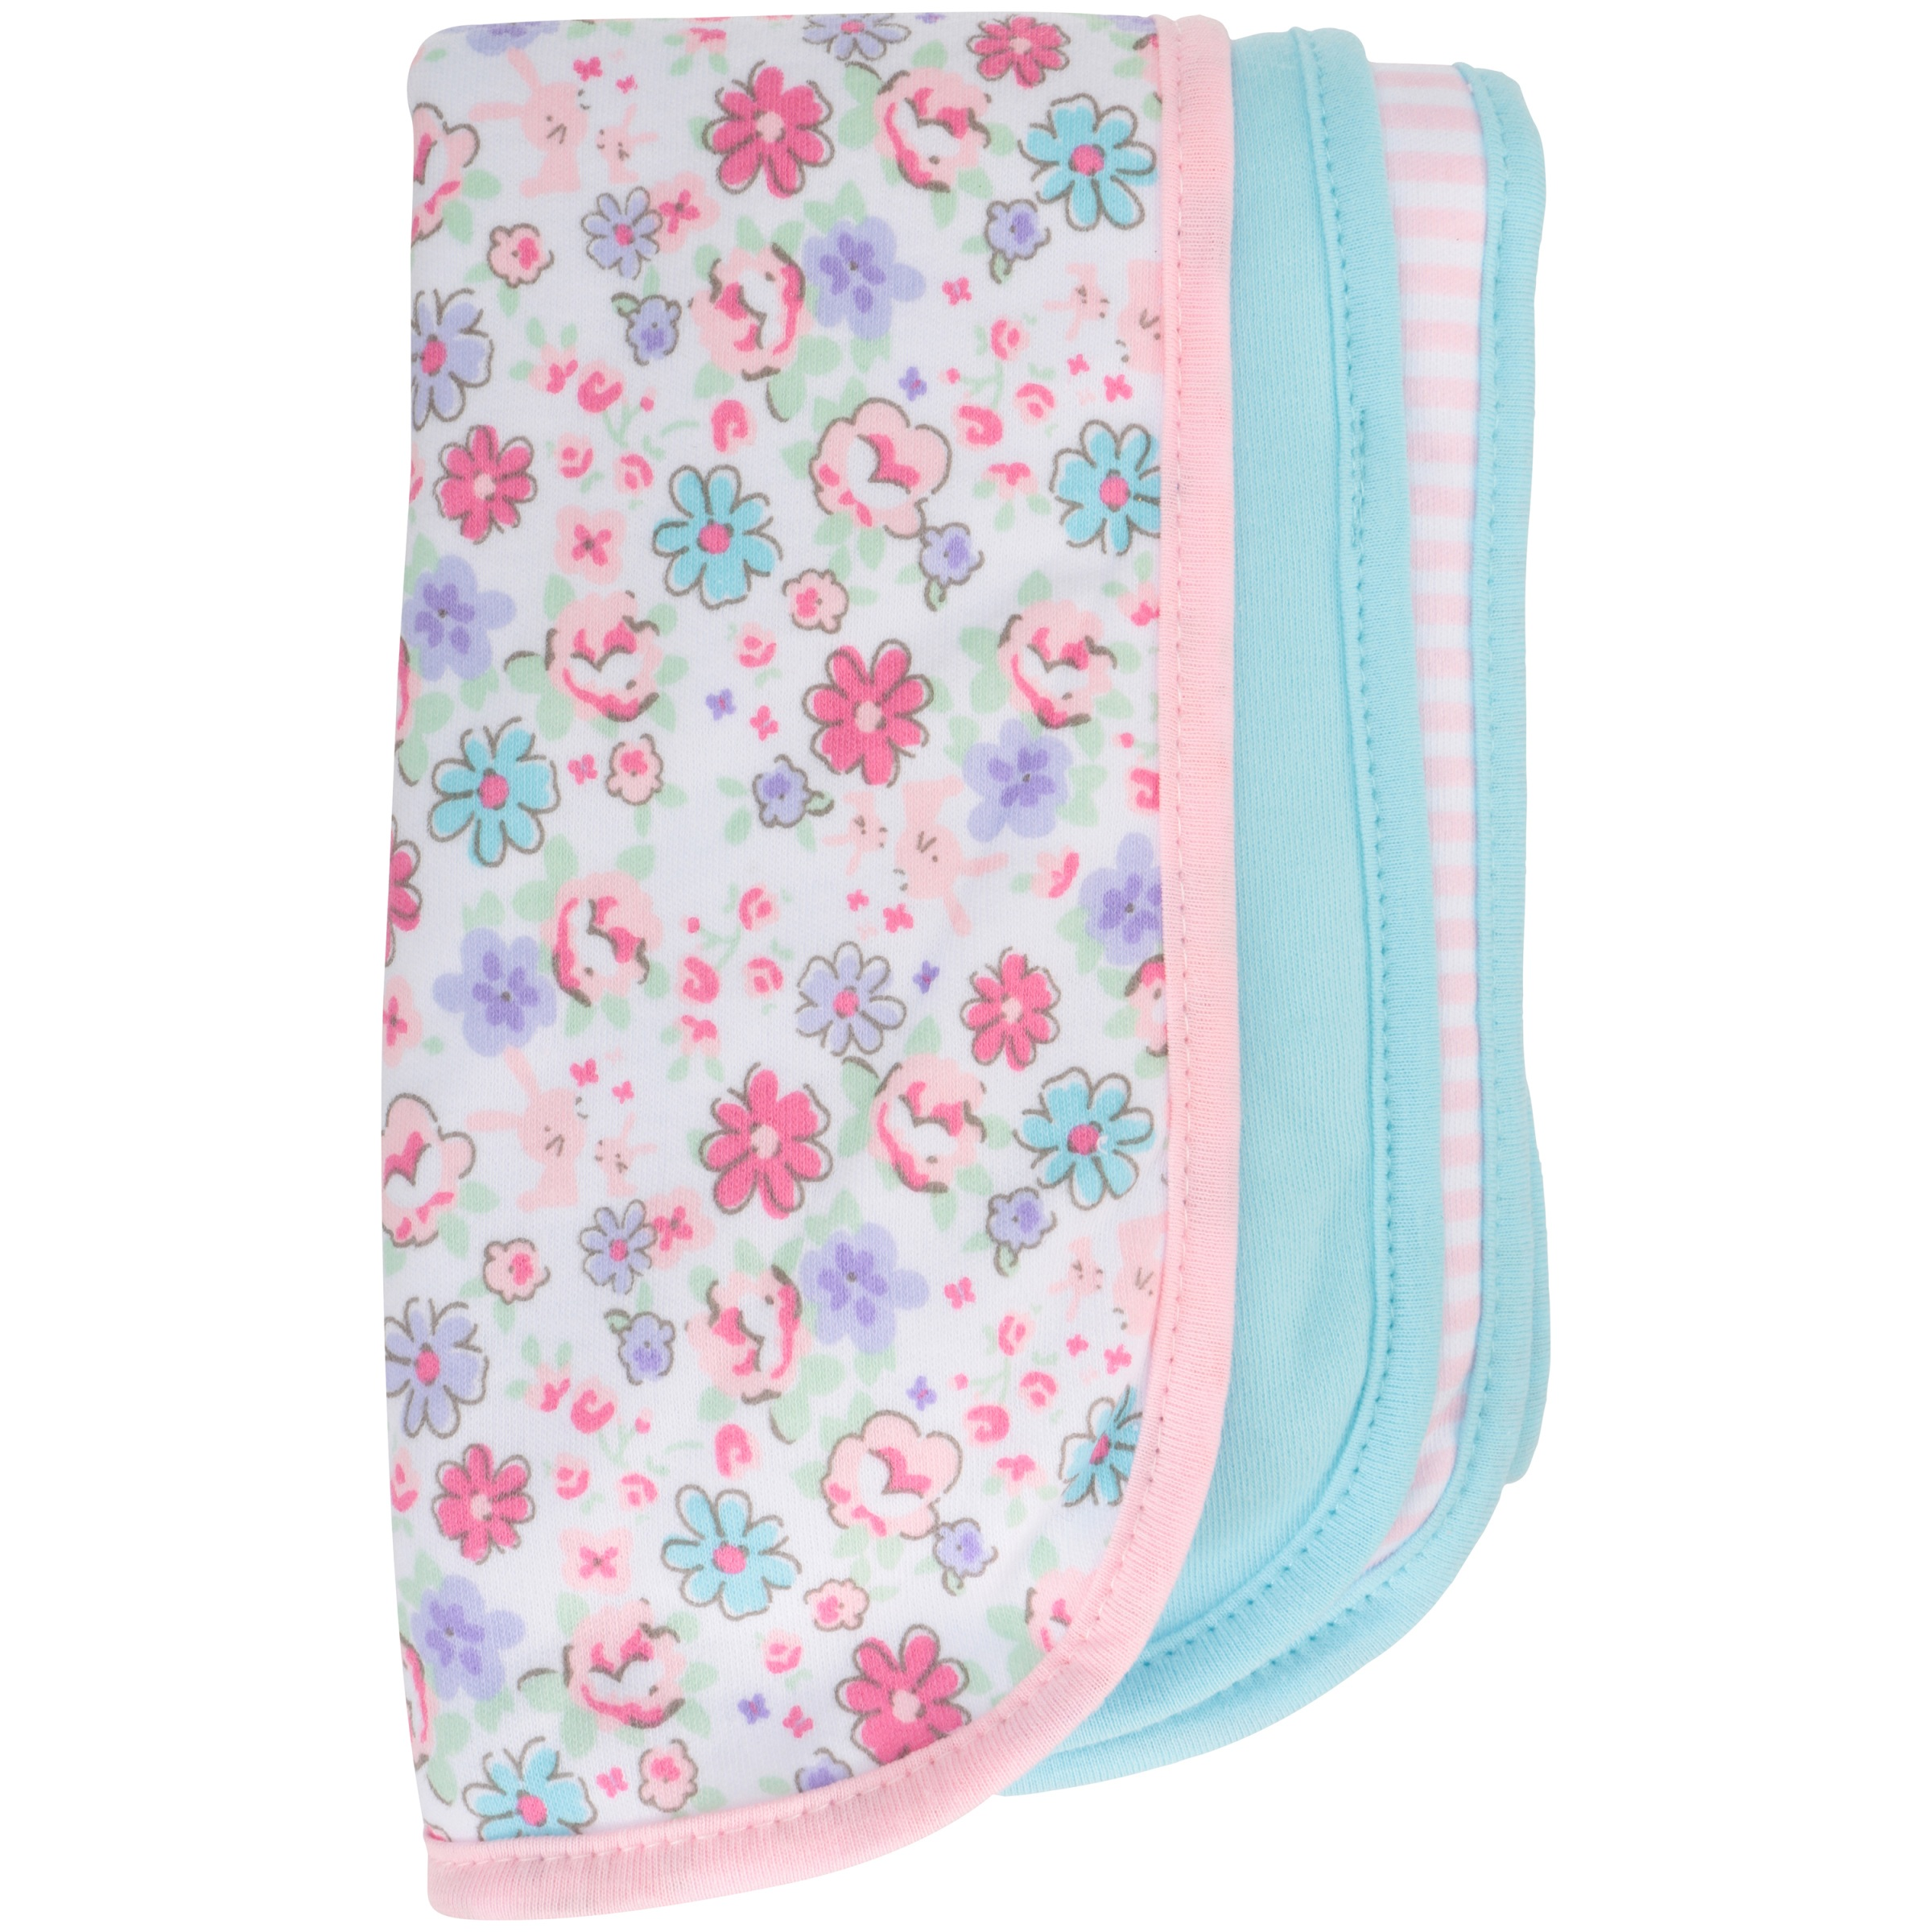 Gerber Newborn Baby Girl Assorted Terry Lined Burp Cloths, 3-Pack